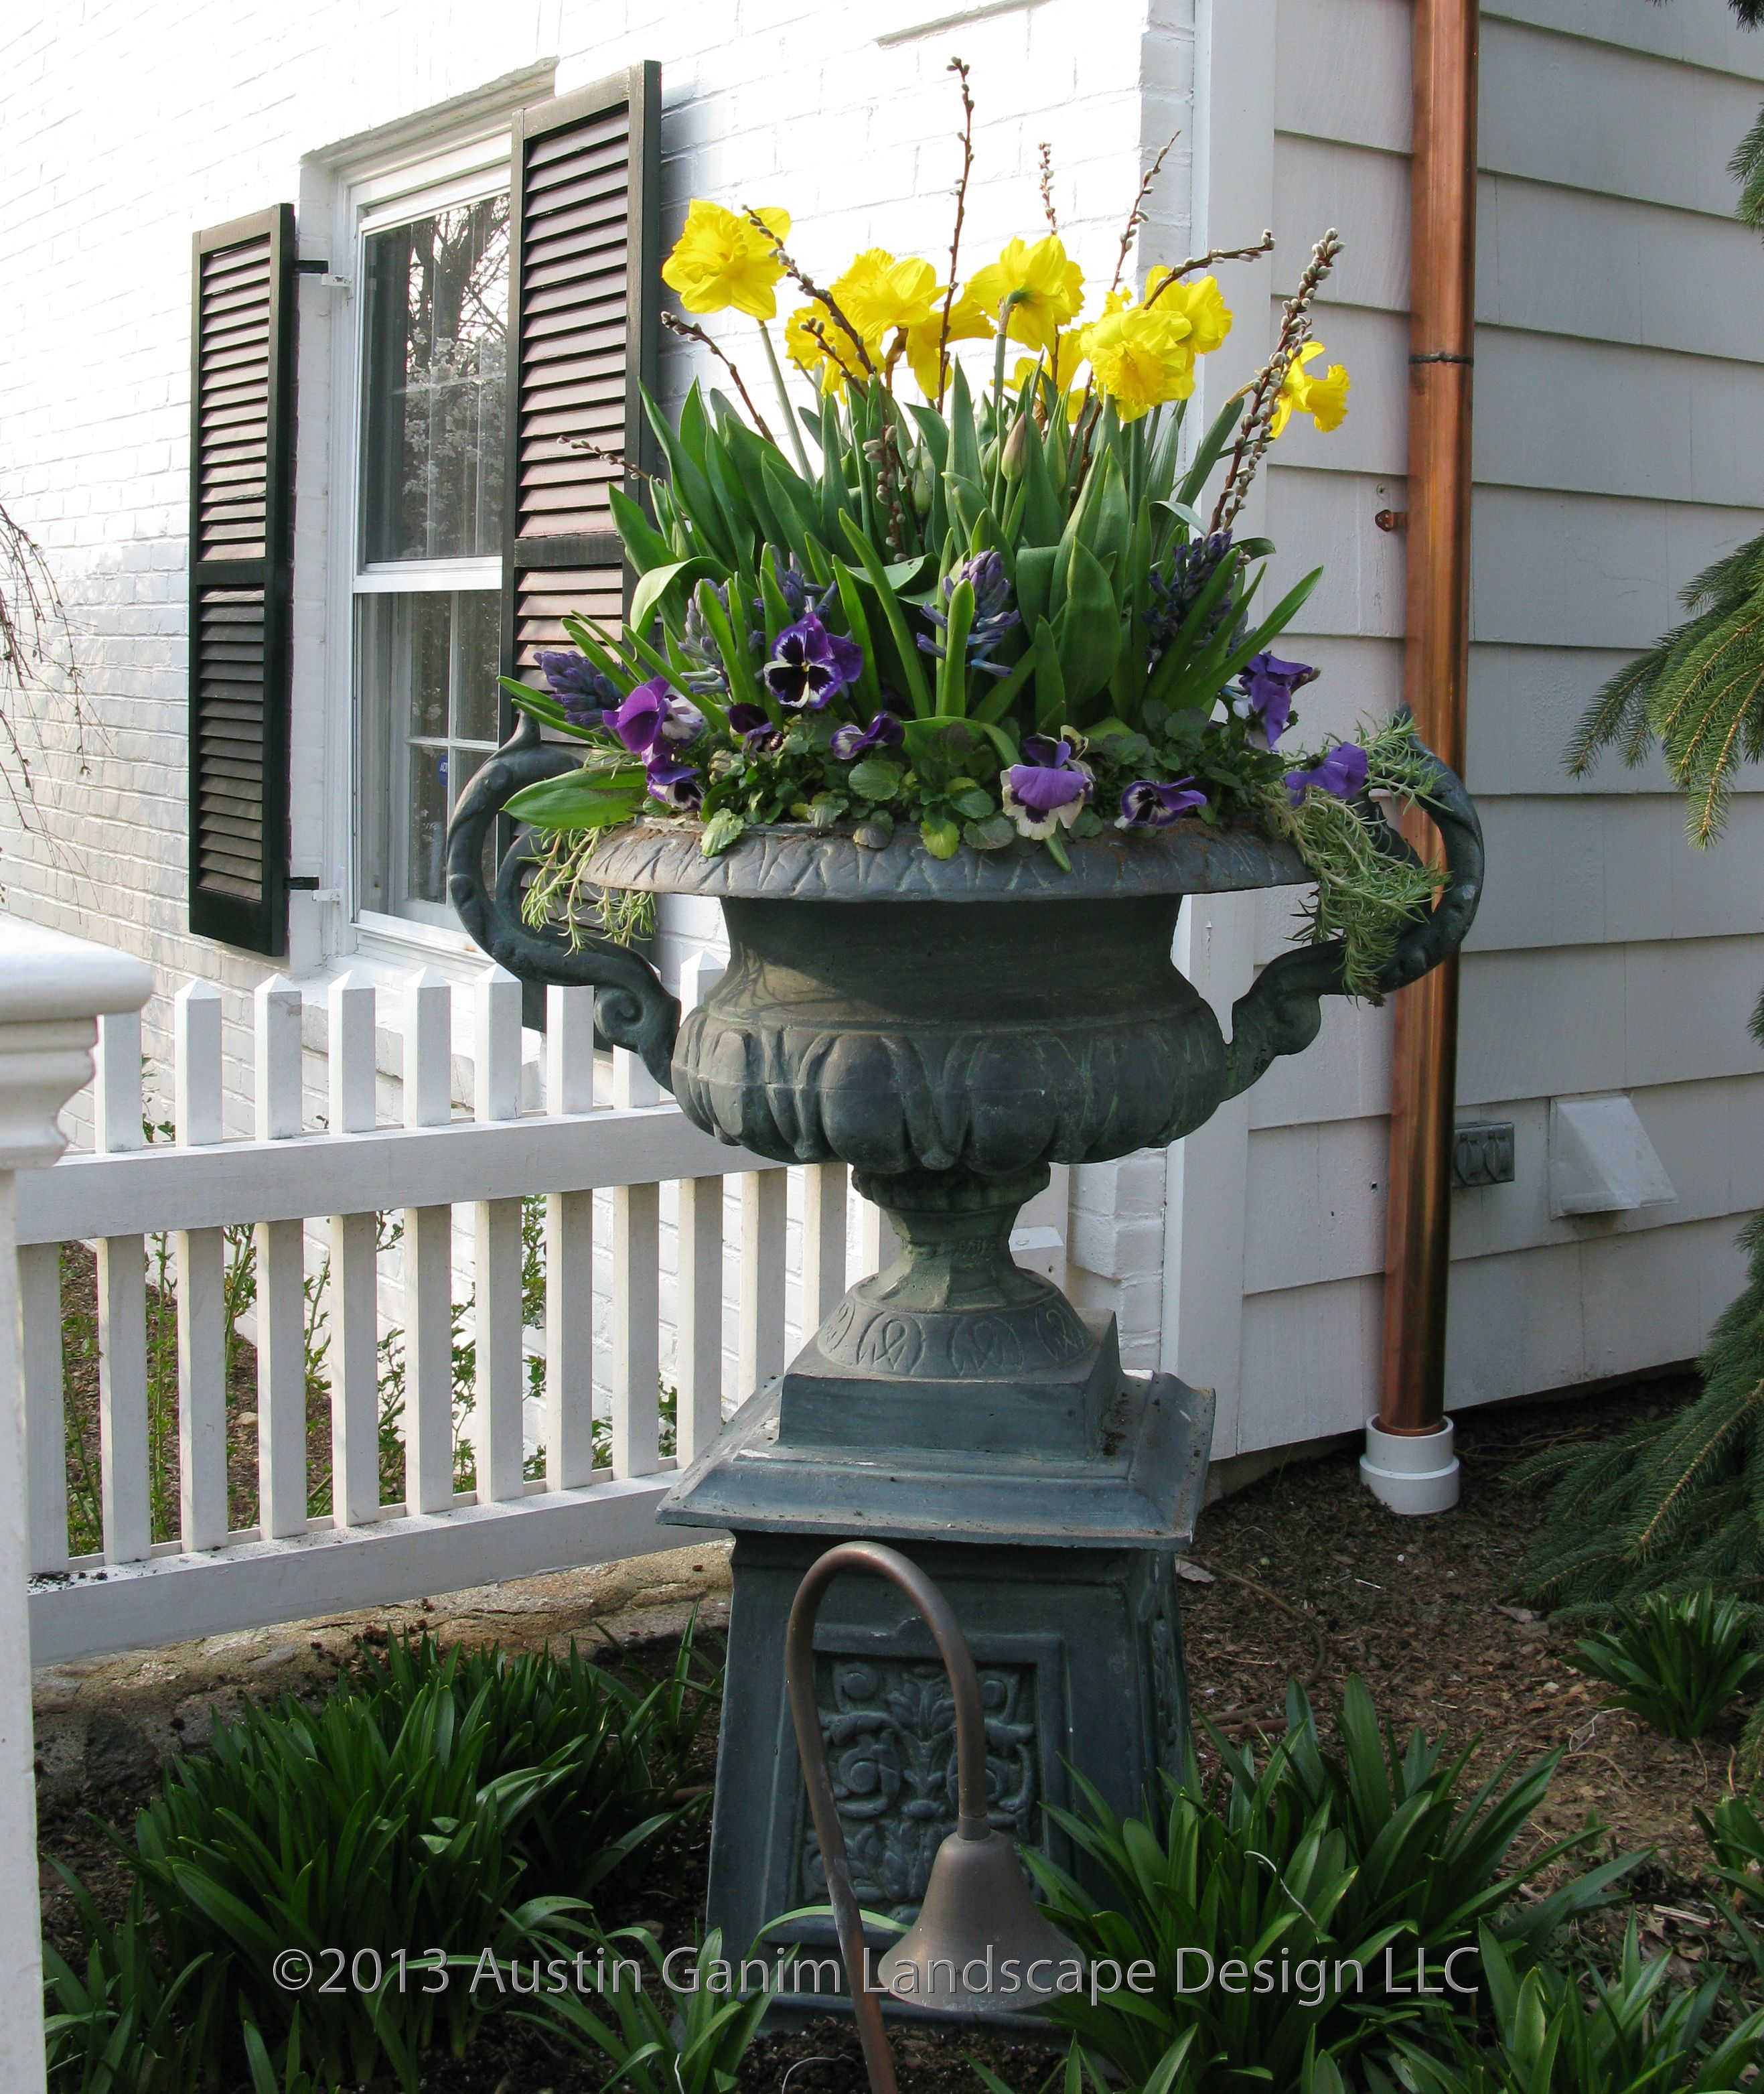 Decorative Urns For Plants Captivating Spring Planter With Yellow Daffodils Pussy Willow And Pansies 2018